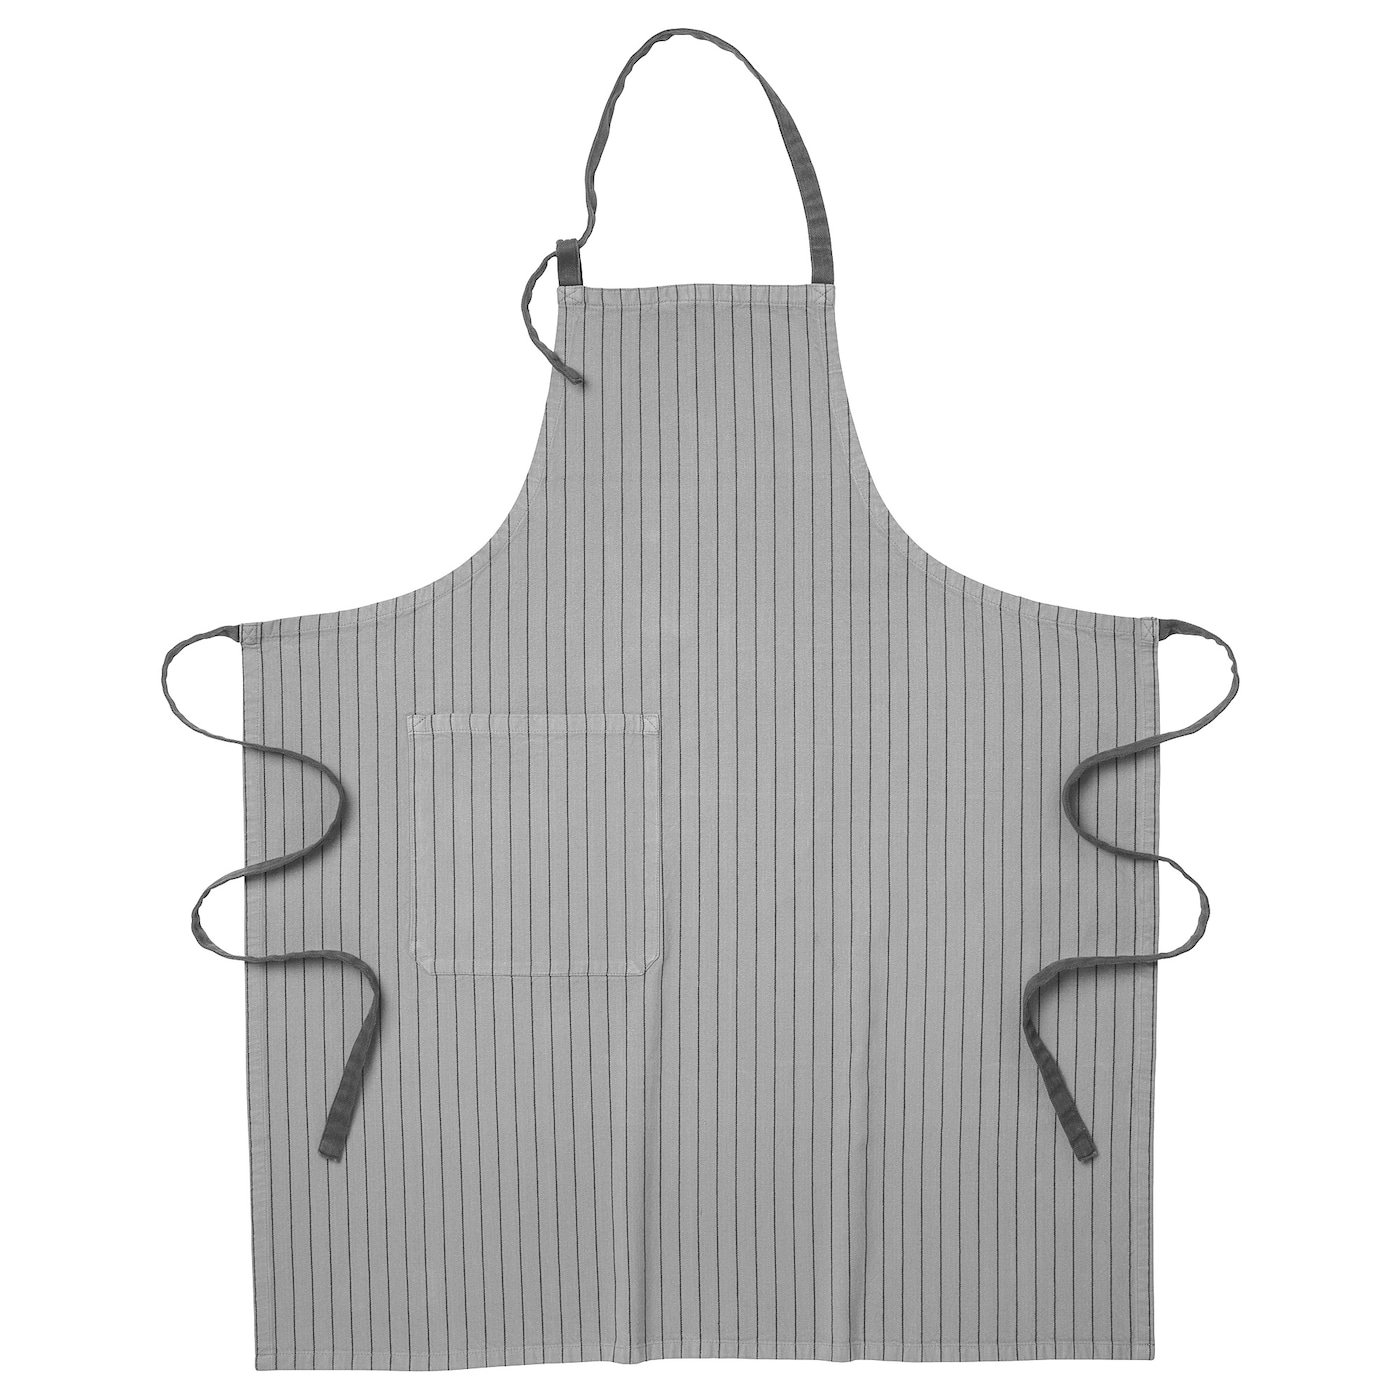 IKEA IKEA 365+ apron The neck-band can be adjusted to fit everybody.